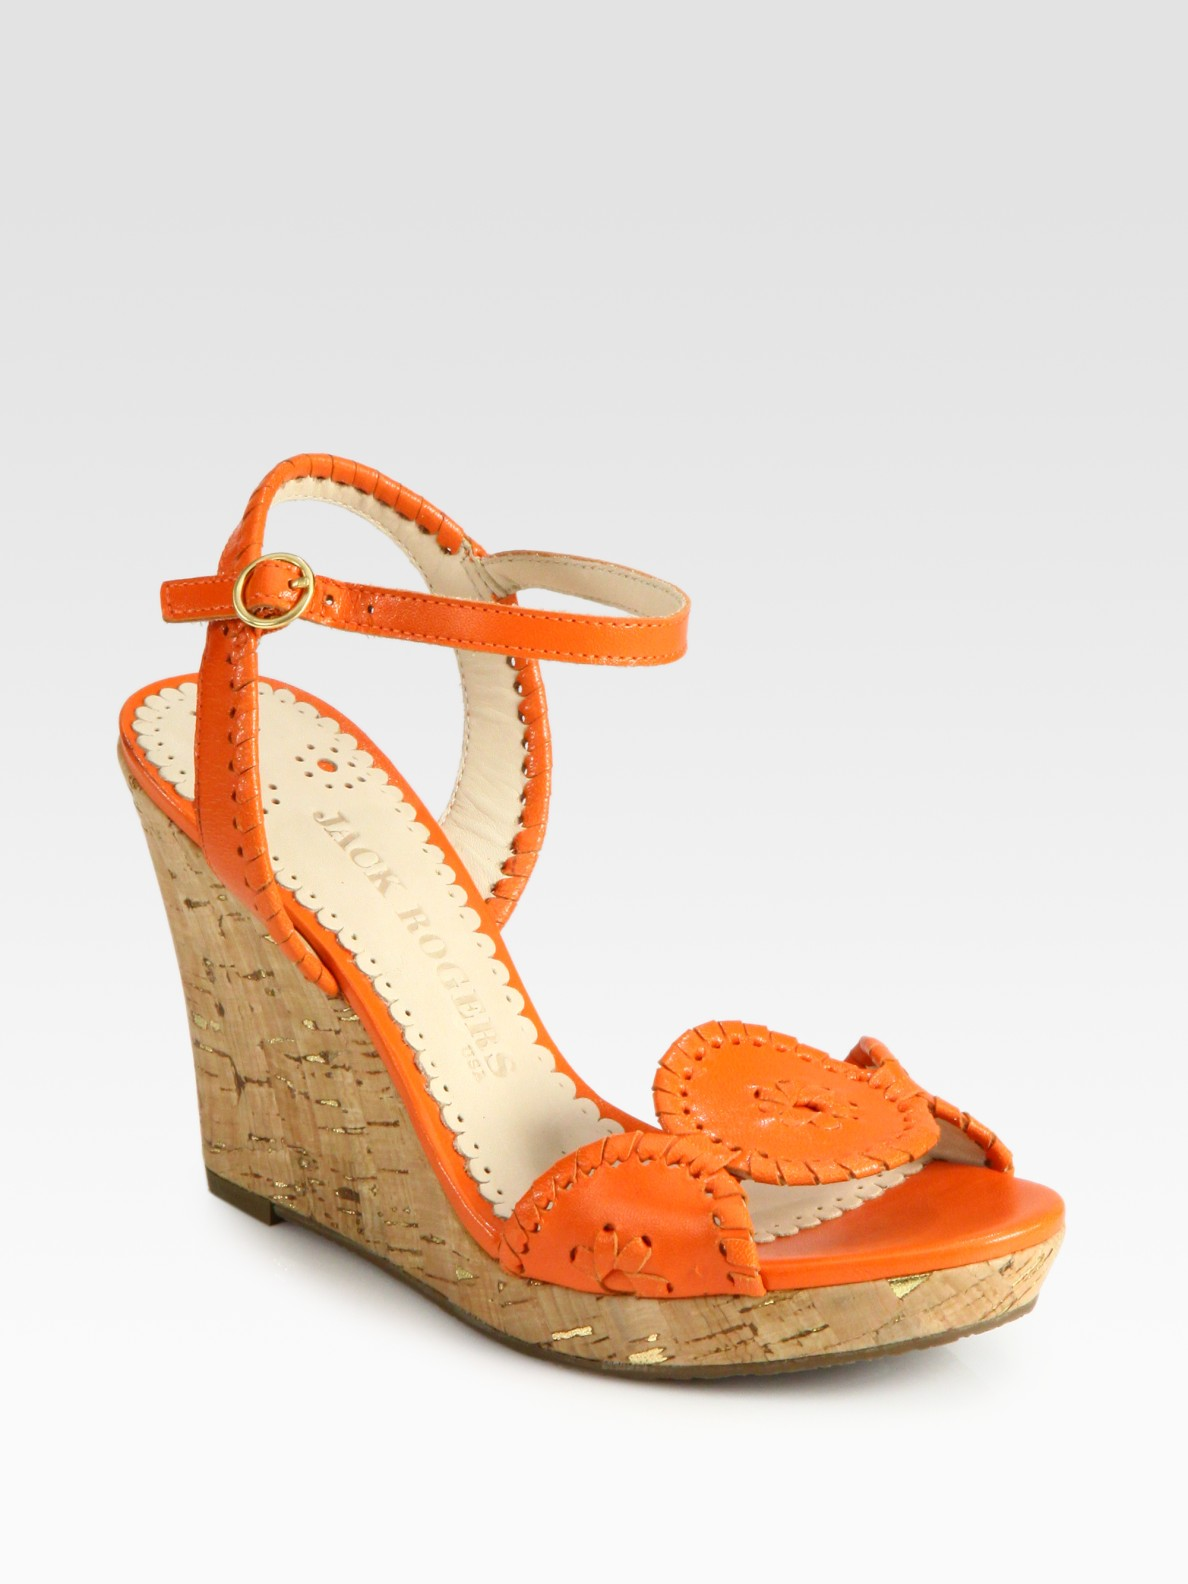 Lyst Jack Rogers Clare Leather Amp Cork Wedge Sandals In